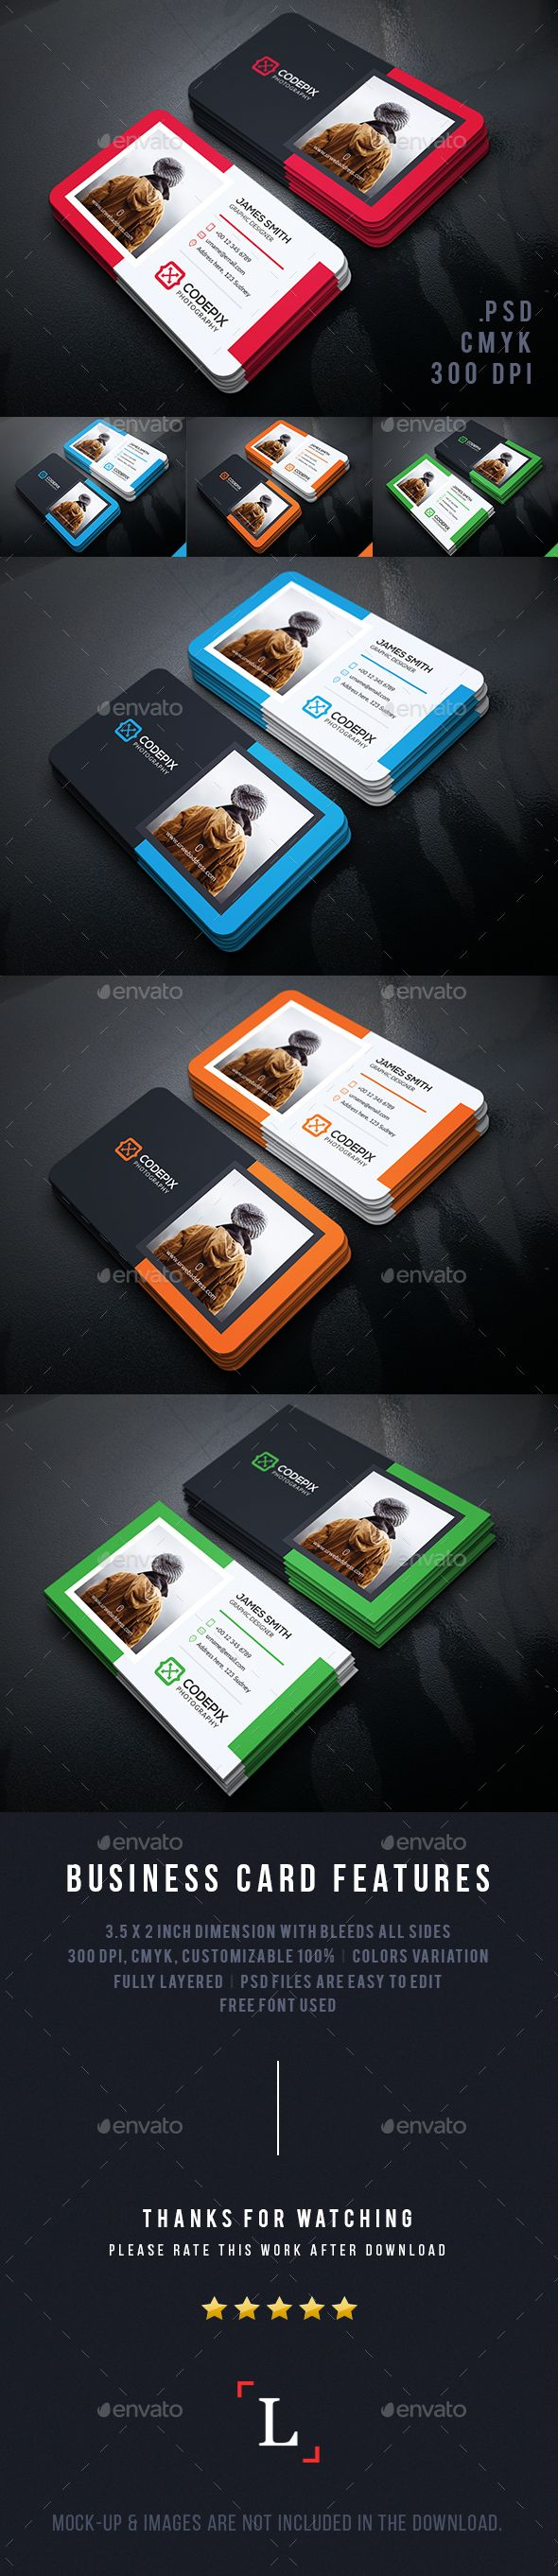 Personal Photography Business Card Template PSD #design Download: http://graphicriver.net/item/personal-photography-business-card/13746752?ref=ksioks